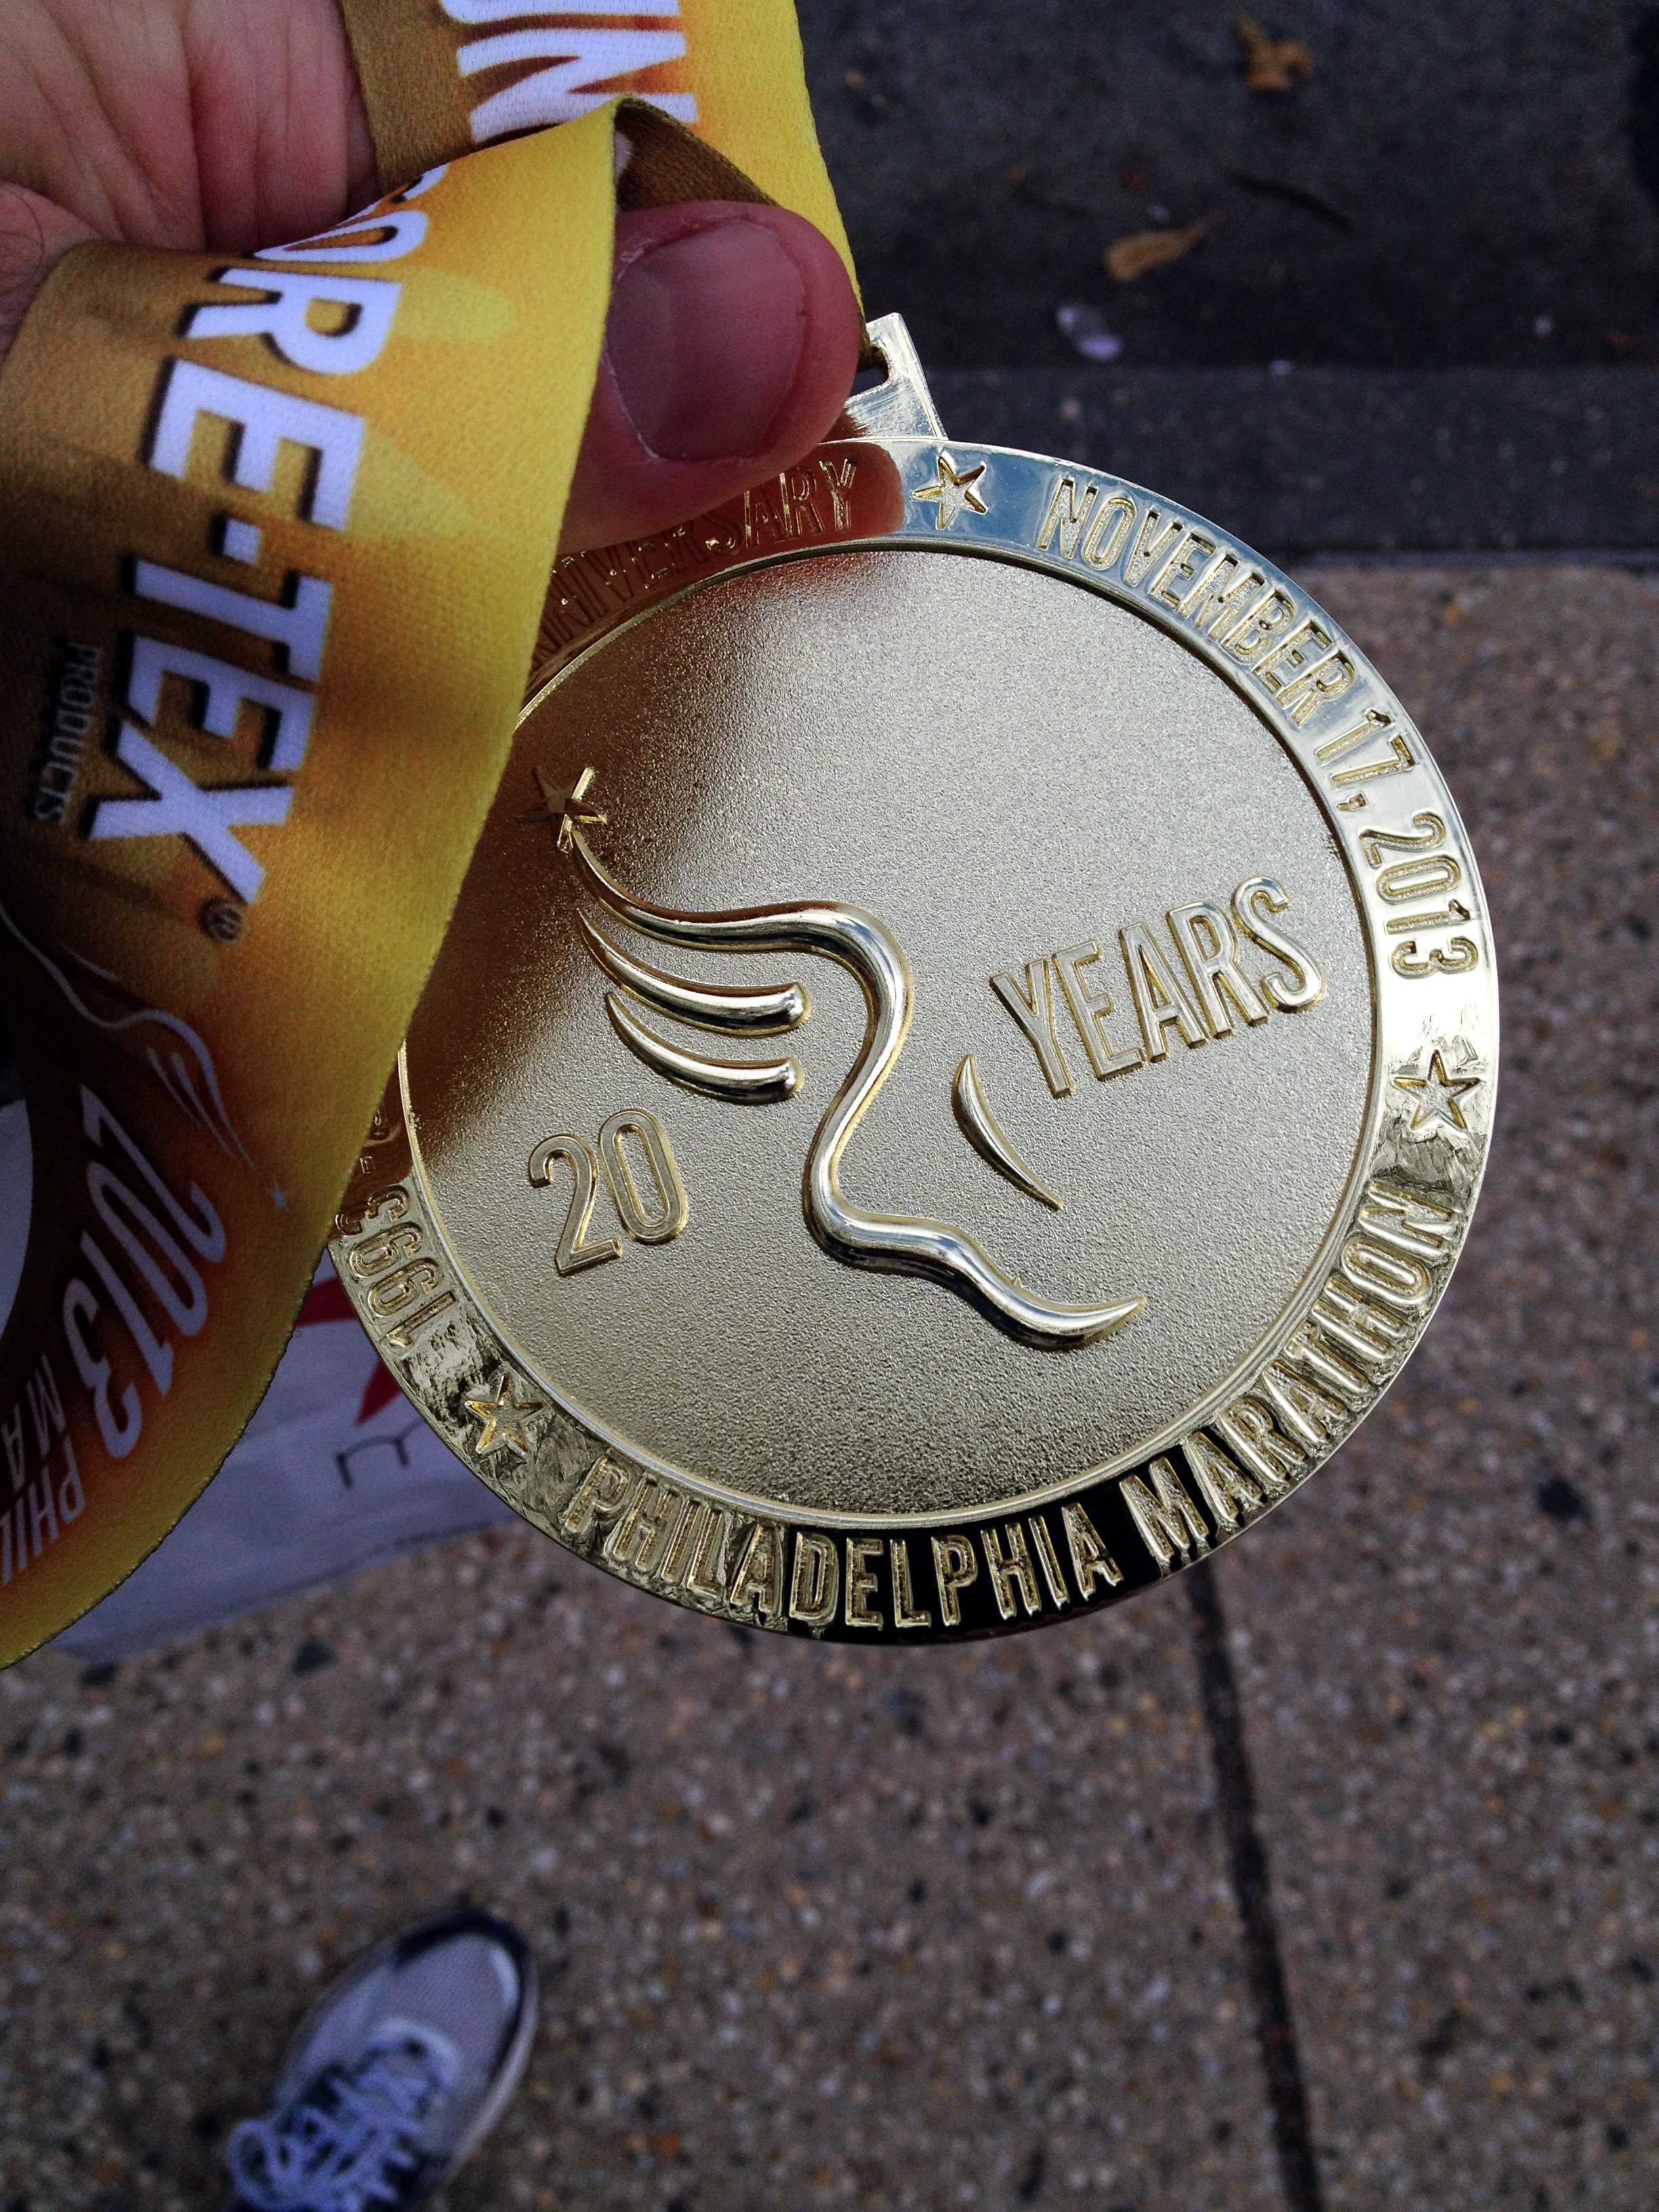 20th Anniversary Philadelphia Marathon Finisher's Medal.